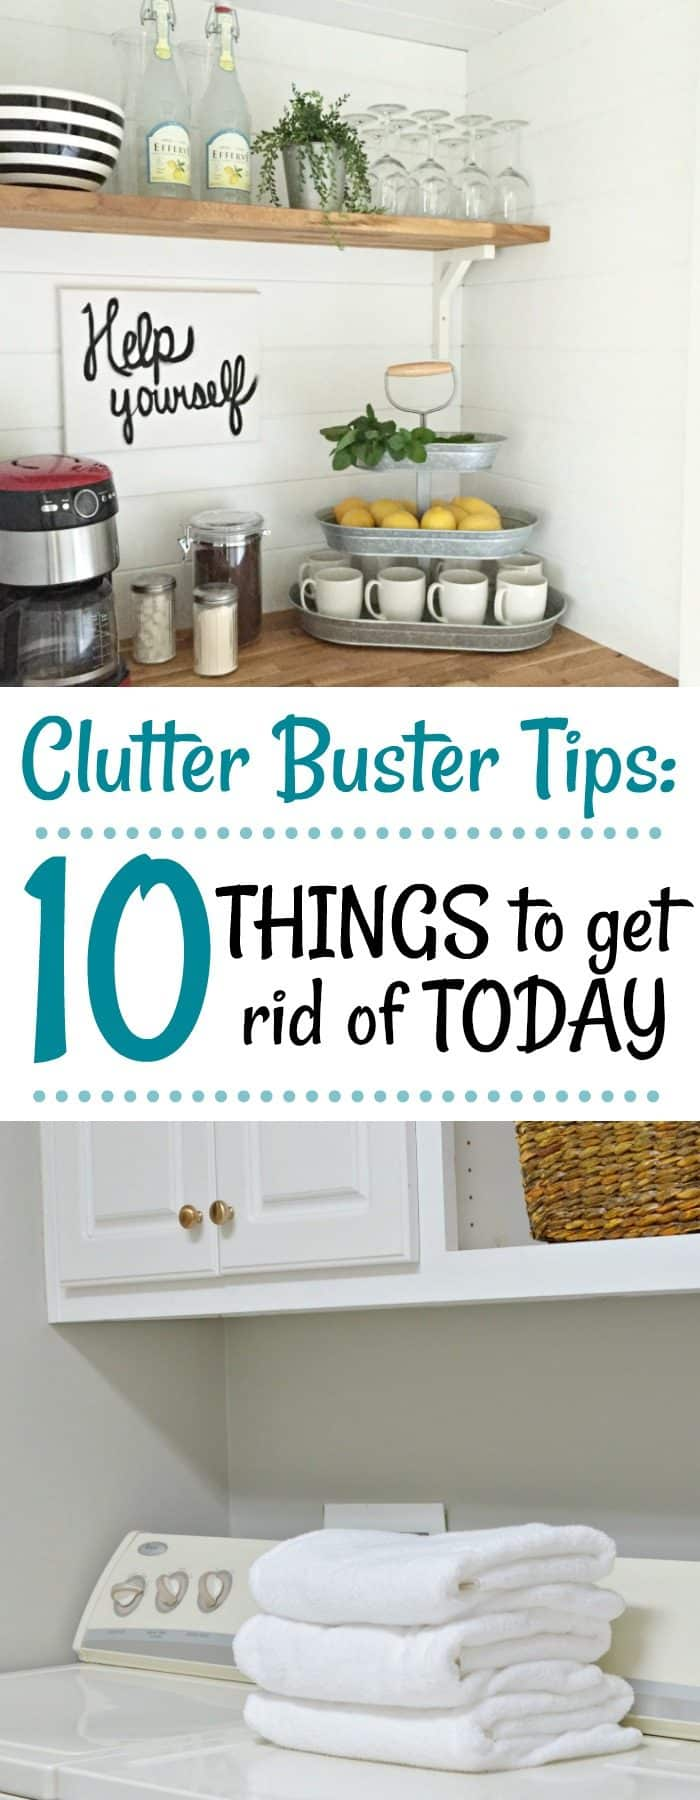 10 Things to get rid of today for a more organized home and life.